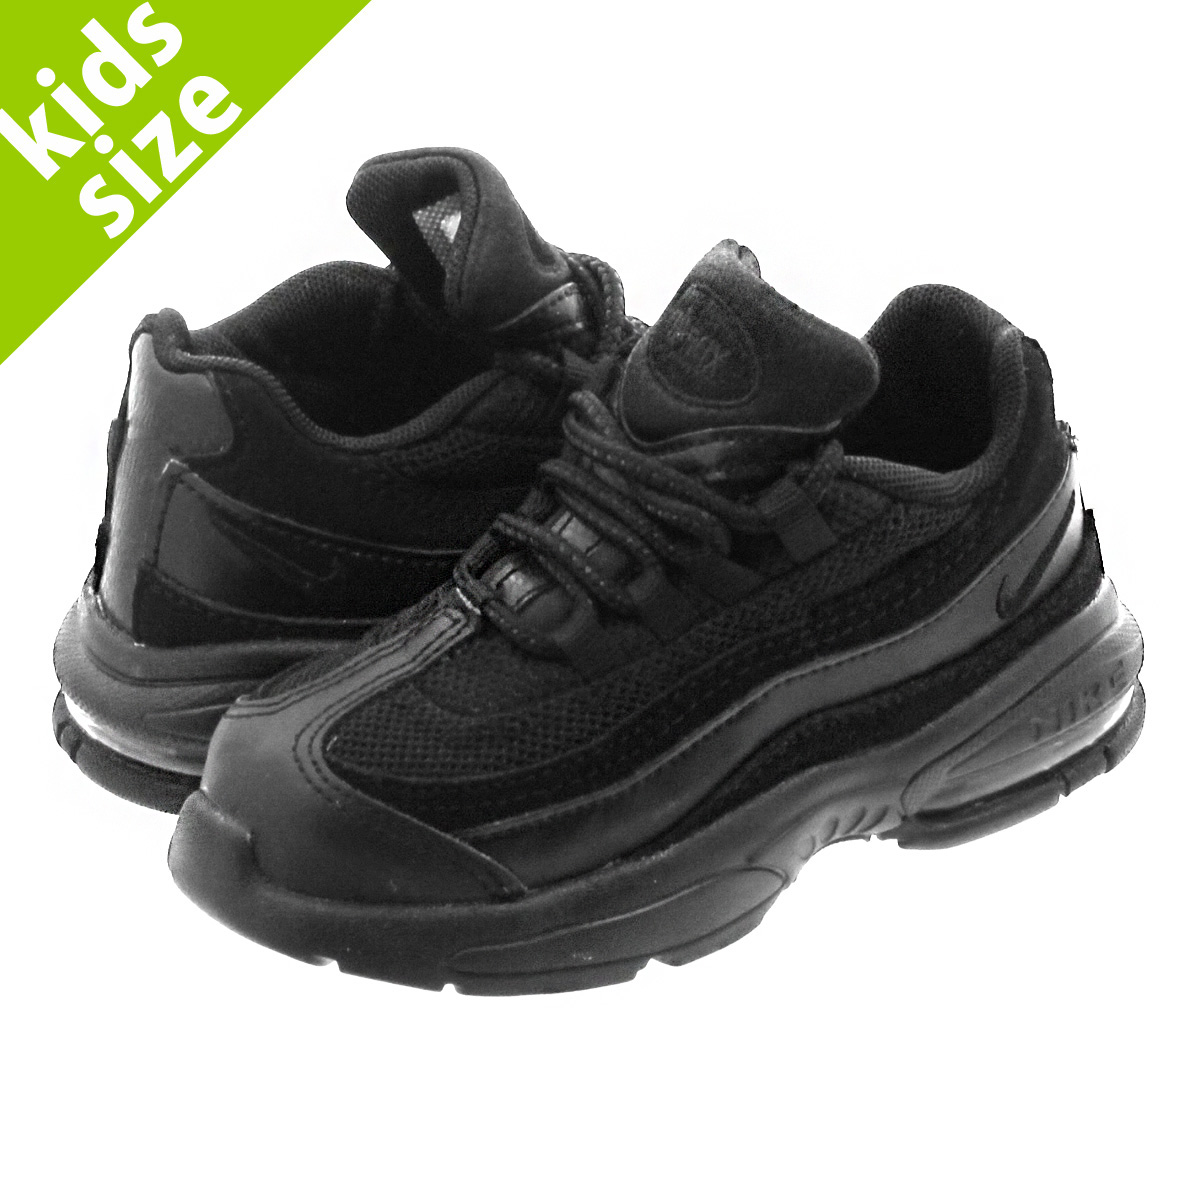 LOWTEX BIG-SMALL SHOP  NIKE AIR MAX 95 TD Kie Ney AMAX 95 TD TRIPLE ... 448baeddf